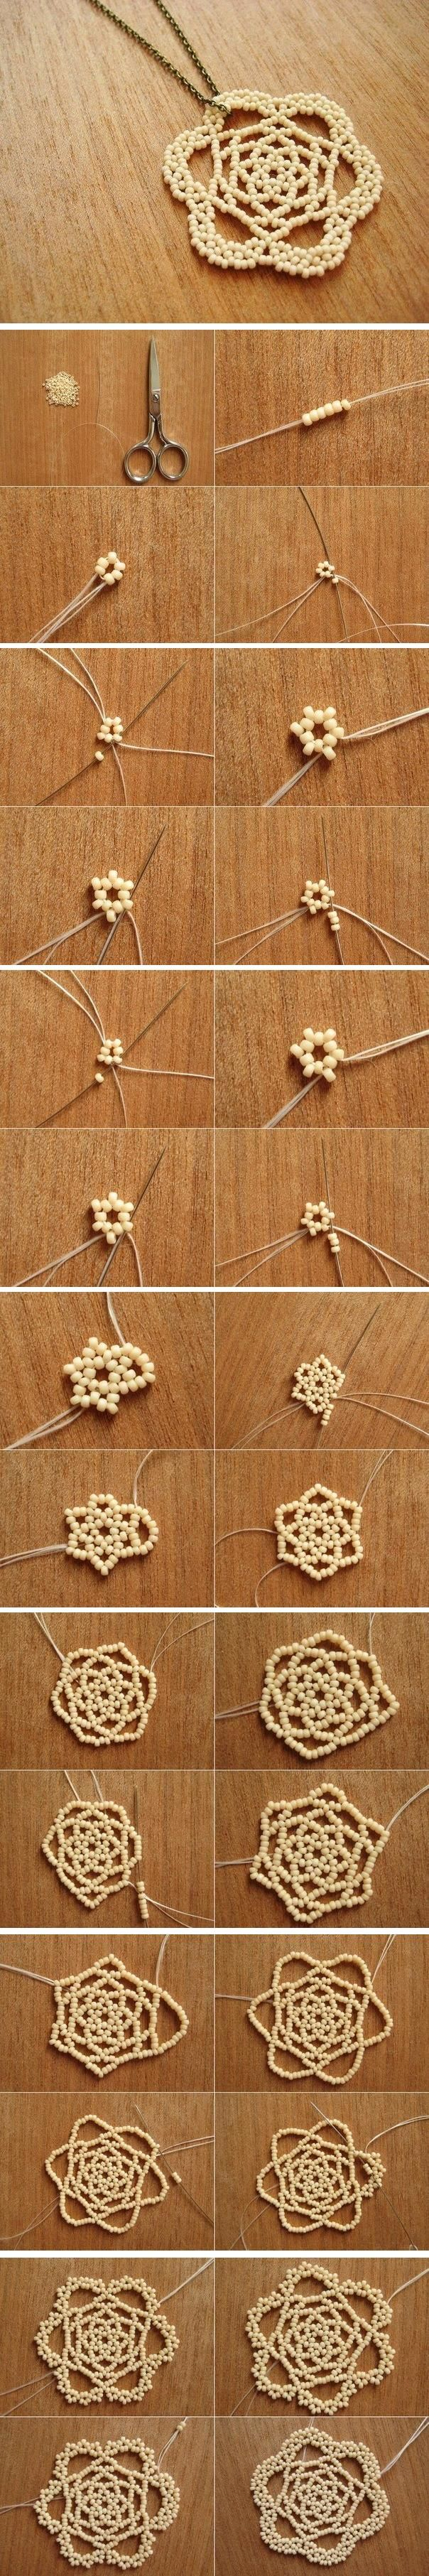 DIY Bead Flower Pendant